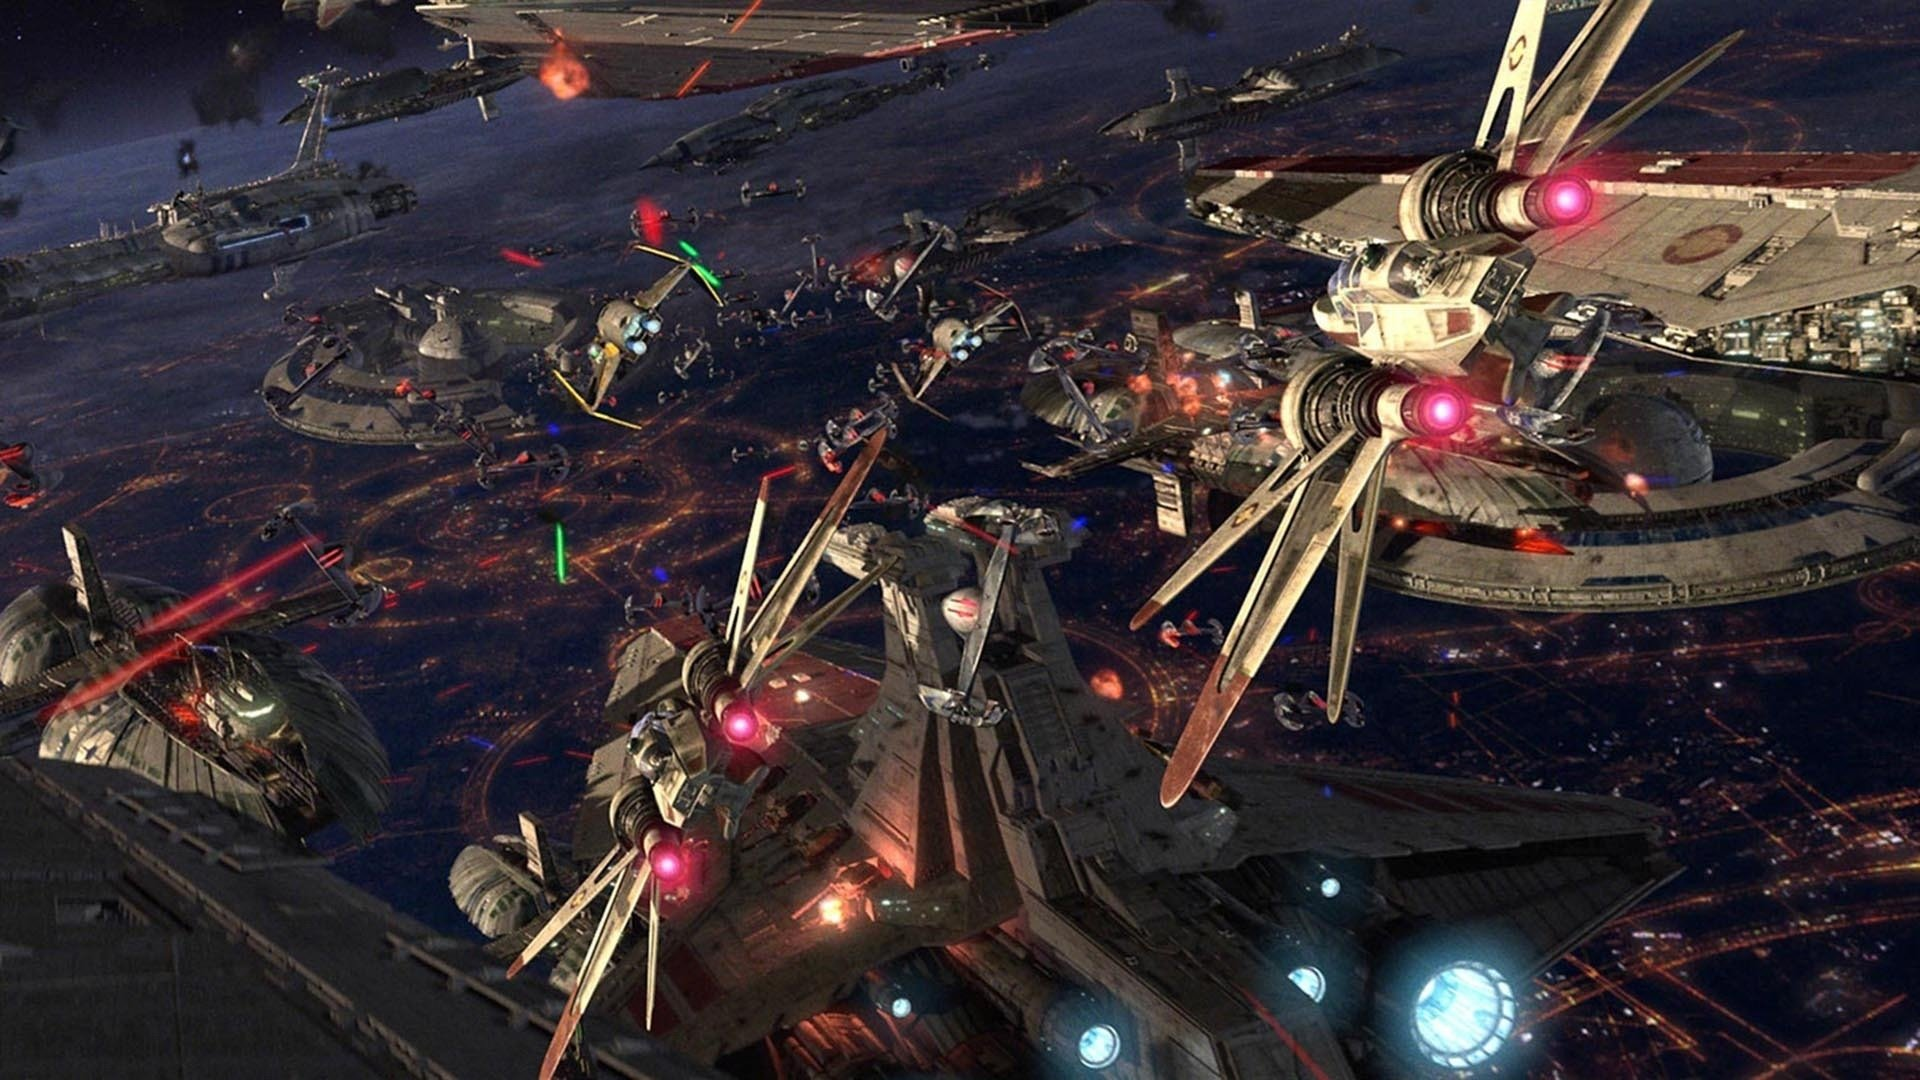 Battles Of Coruscant Hd Wallpaper Background Image 1920x1080 Id 697960 Wallpaper Abyss